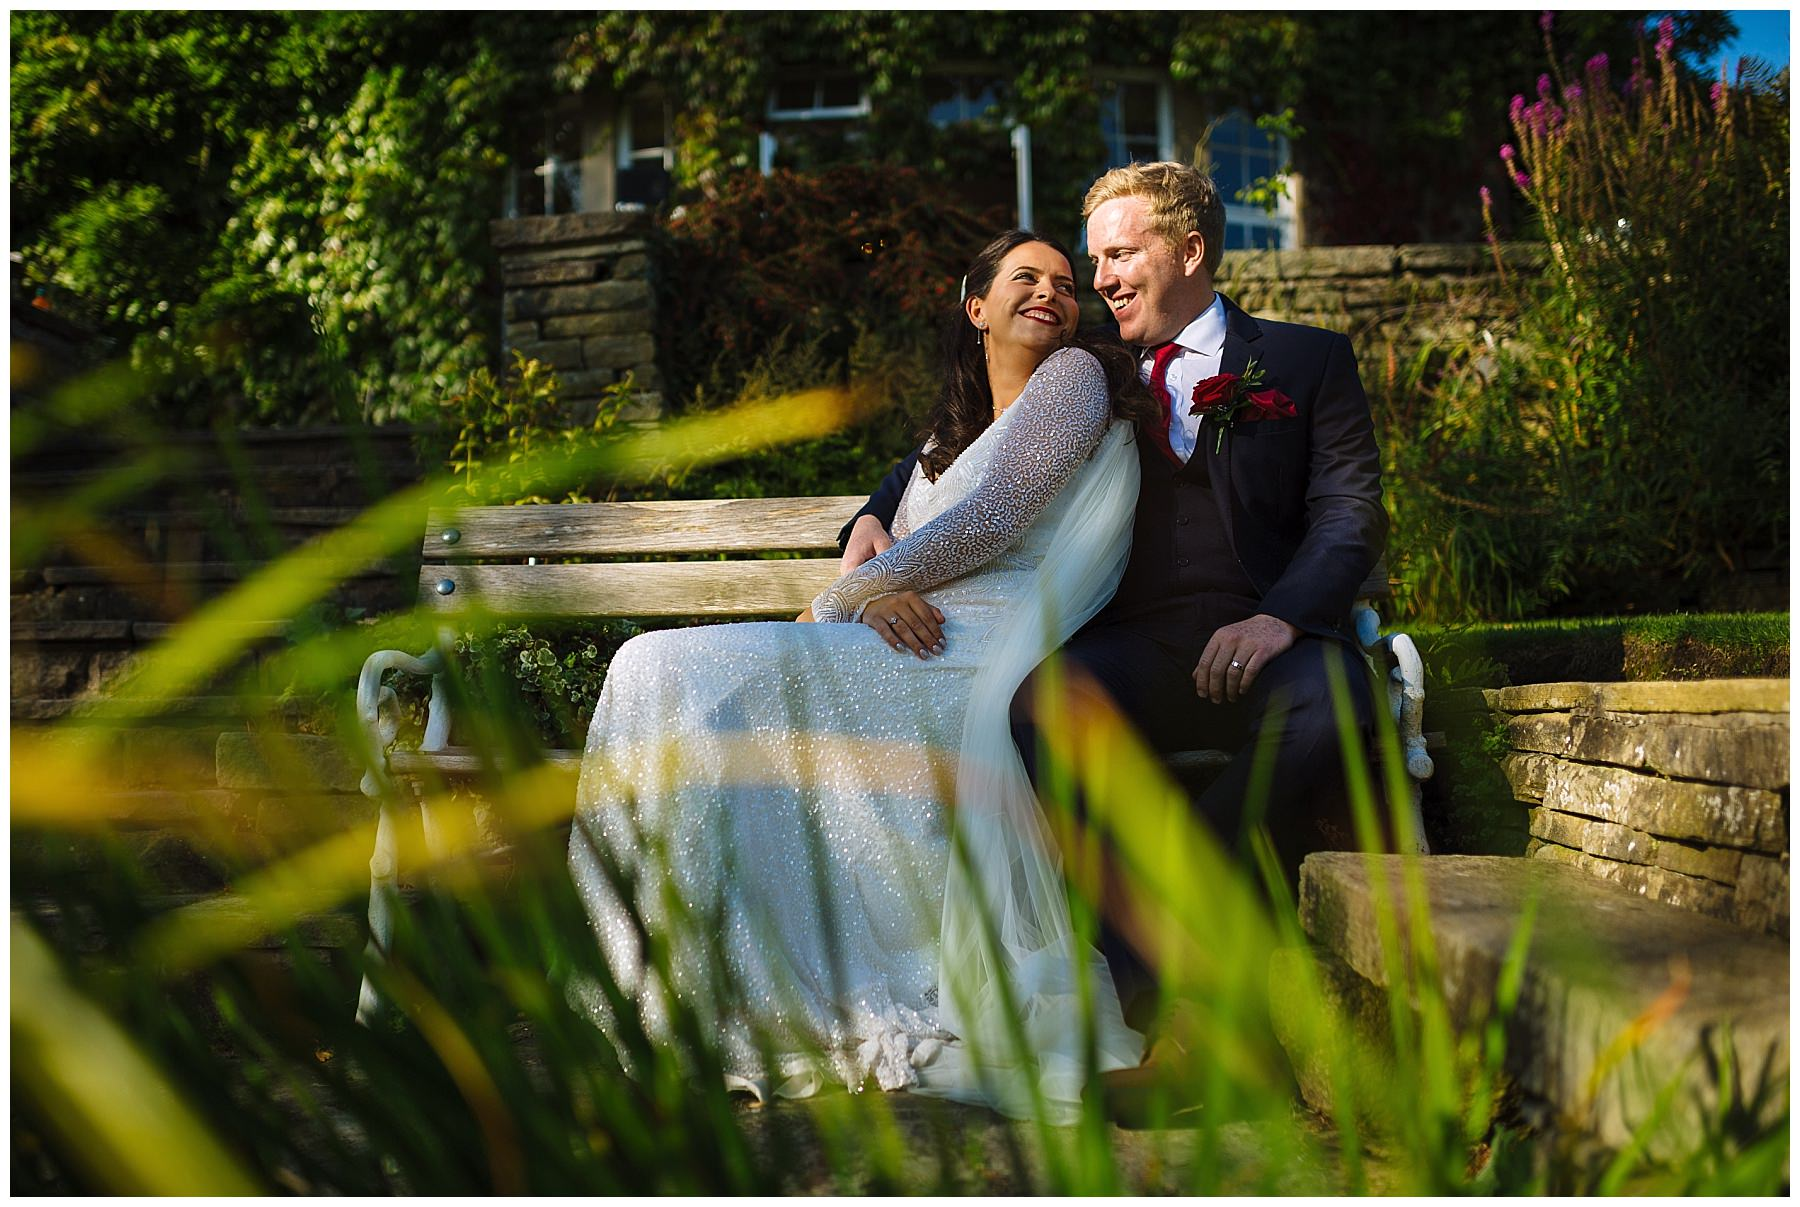 Wedding Portraits at Hilltop Country House